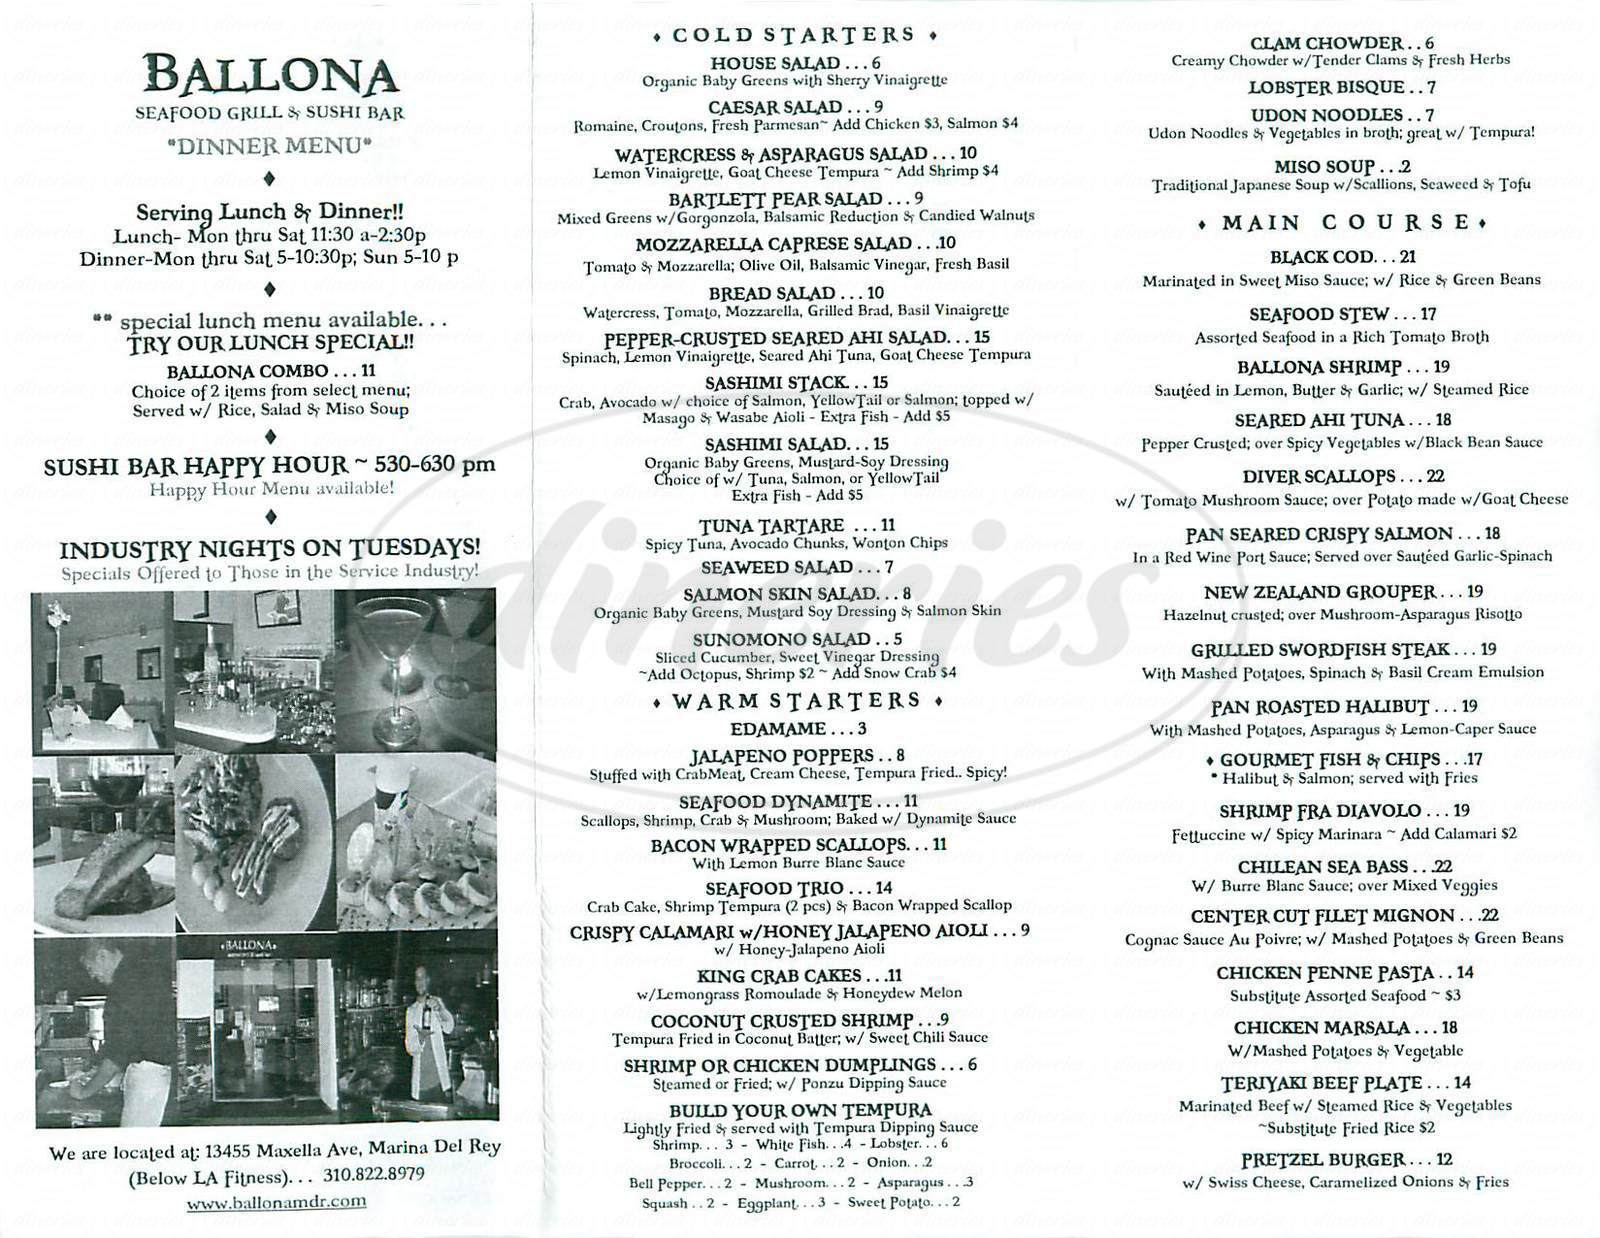 menu for Ballona Seafood Grill & Sushi